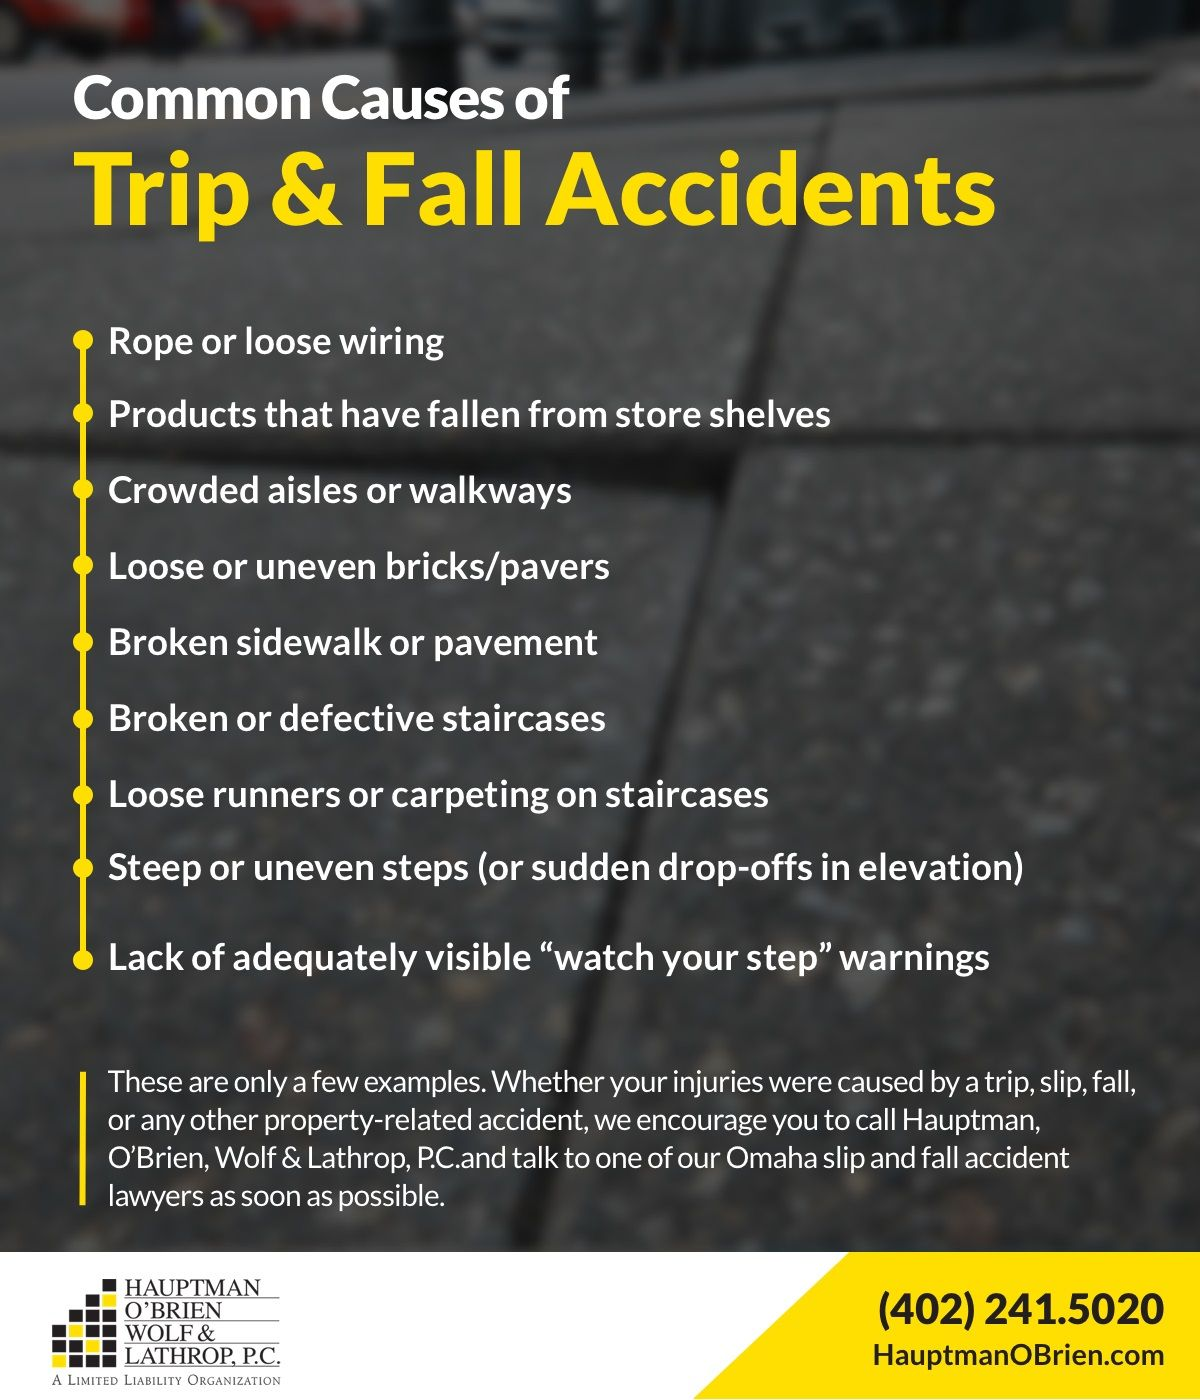 Common Causes of Trip and Fall Accidents